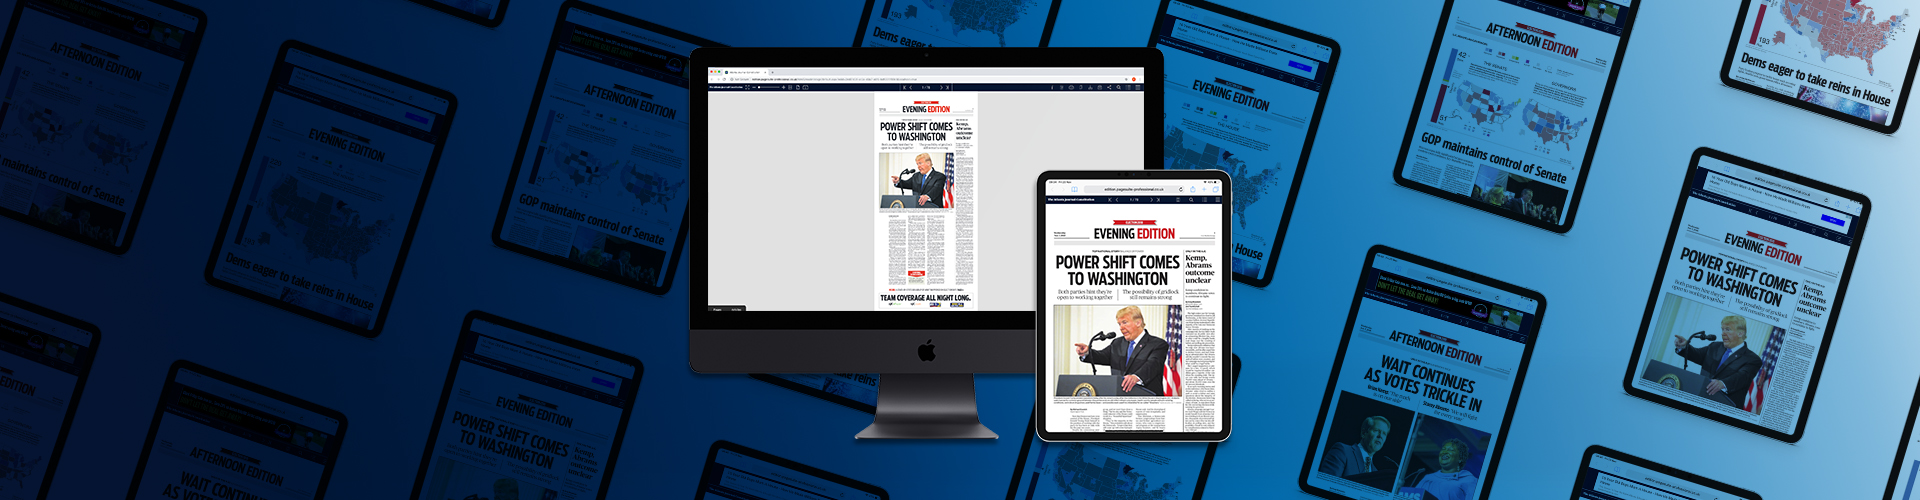 Cox Media Group Launch 'Bonus Editions' to Provide Enhanced Election Coverage